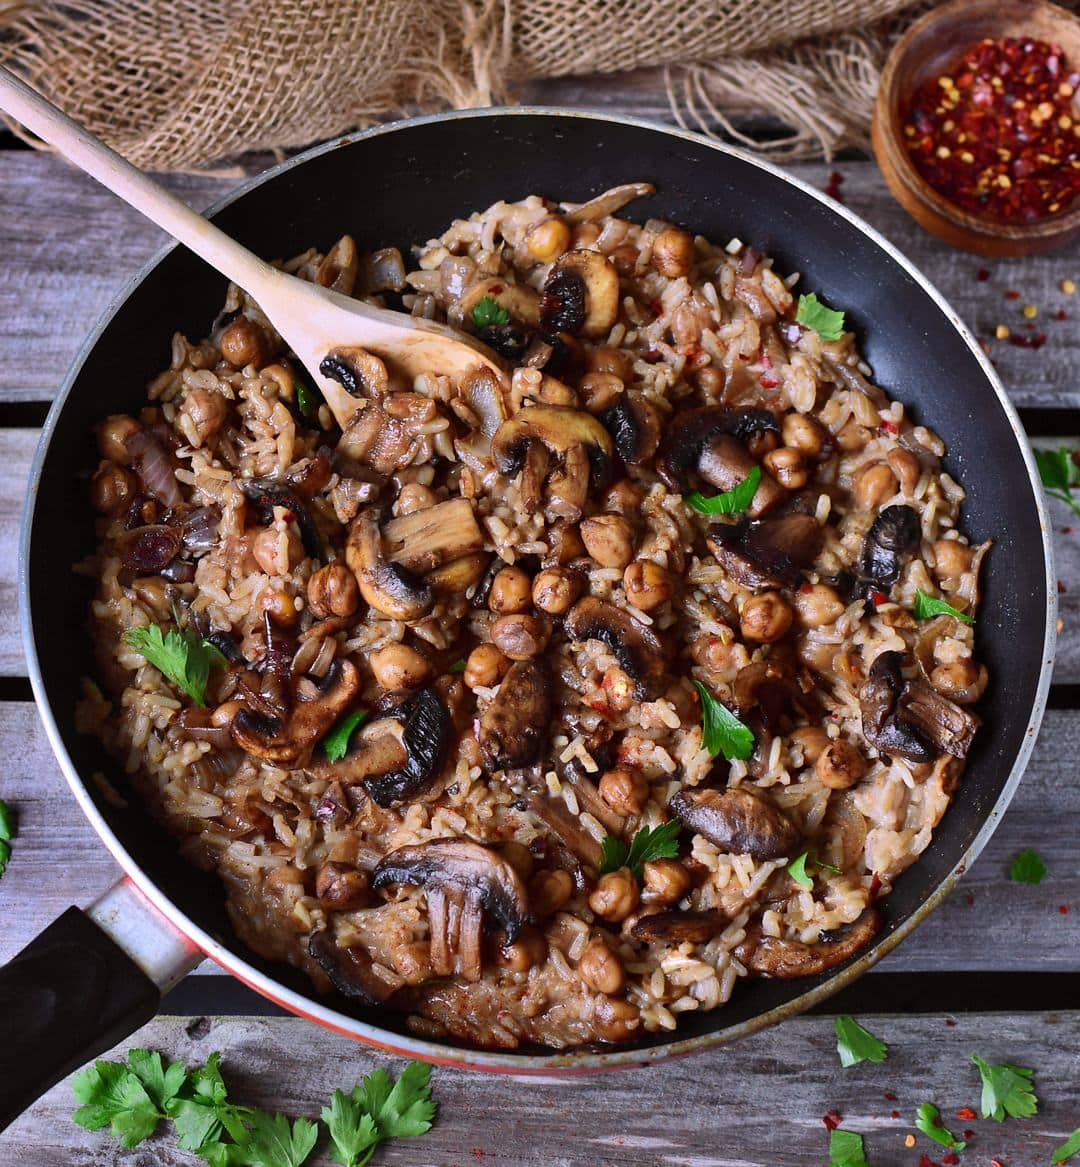 Vegan mushroom risotto in a creamy coconut sauce. This risotto is plant-based and gluten-free and contains healthy protein from chickpeas. A flavorful and easy to make recipe.